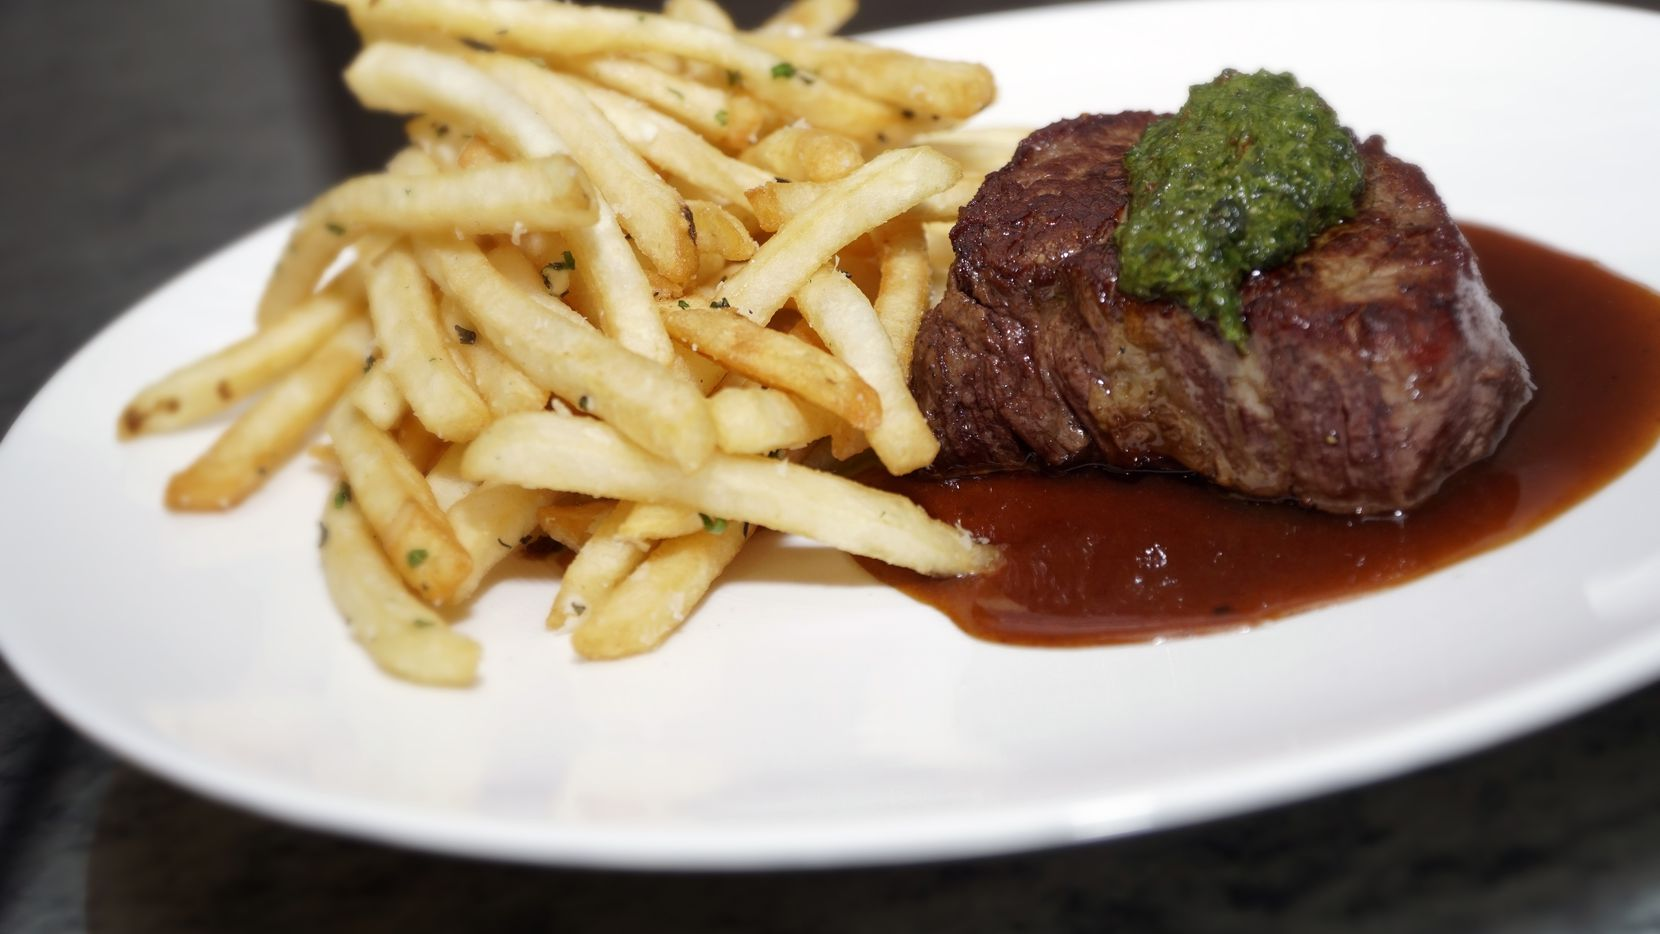 Steak & Frites at Wicked Butcher in the Sinclair Hotel in downtown Fort Worth